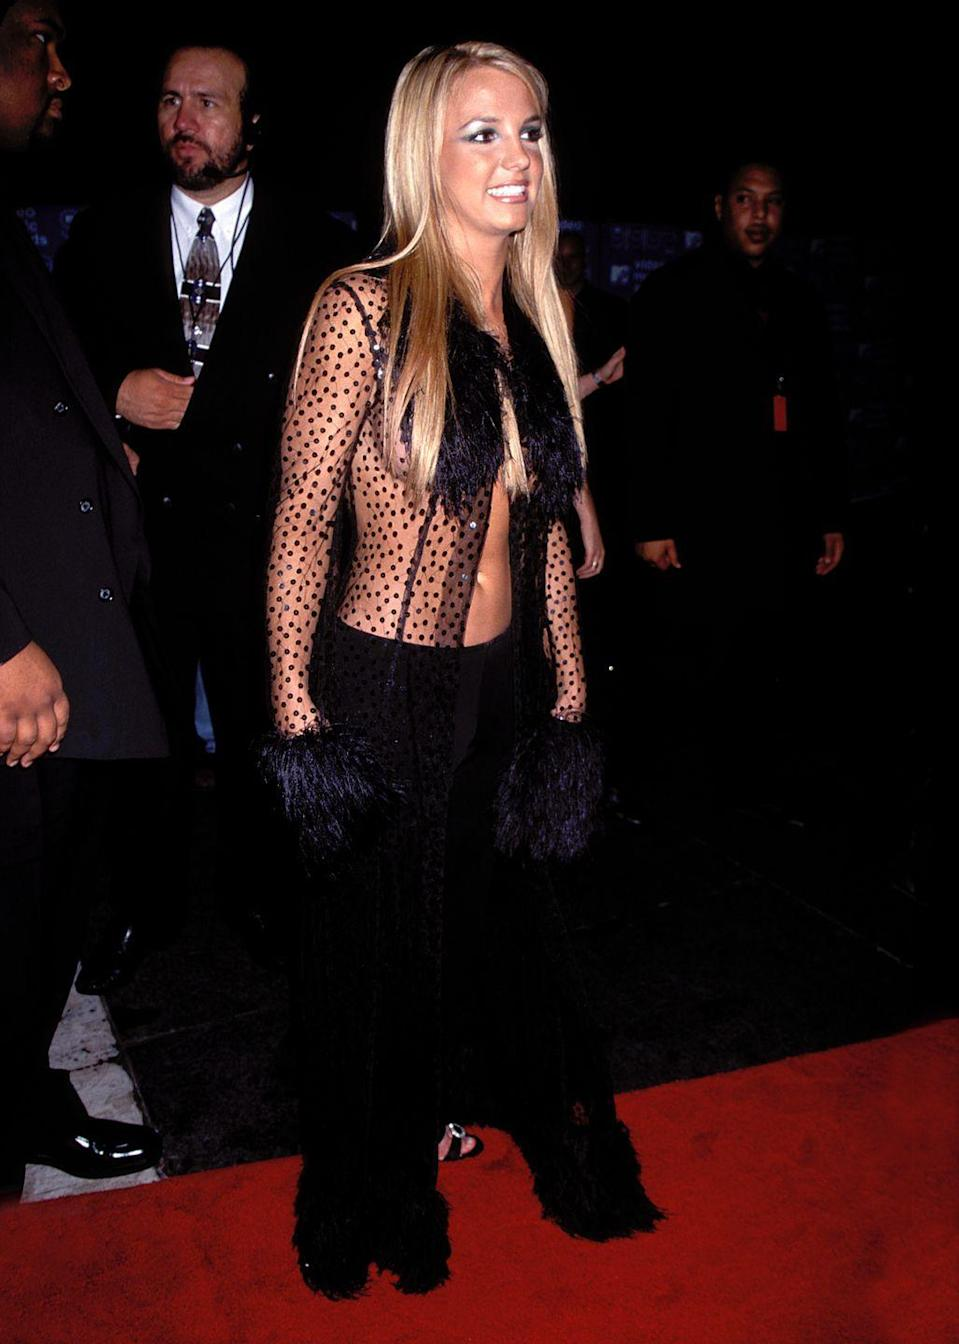 <p>More dramatic eyeshadow circa the 1999 MTV Video Music Awards. Also, there are more marabou feathers on the sleeves of this epic see-through top. </p>